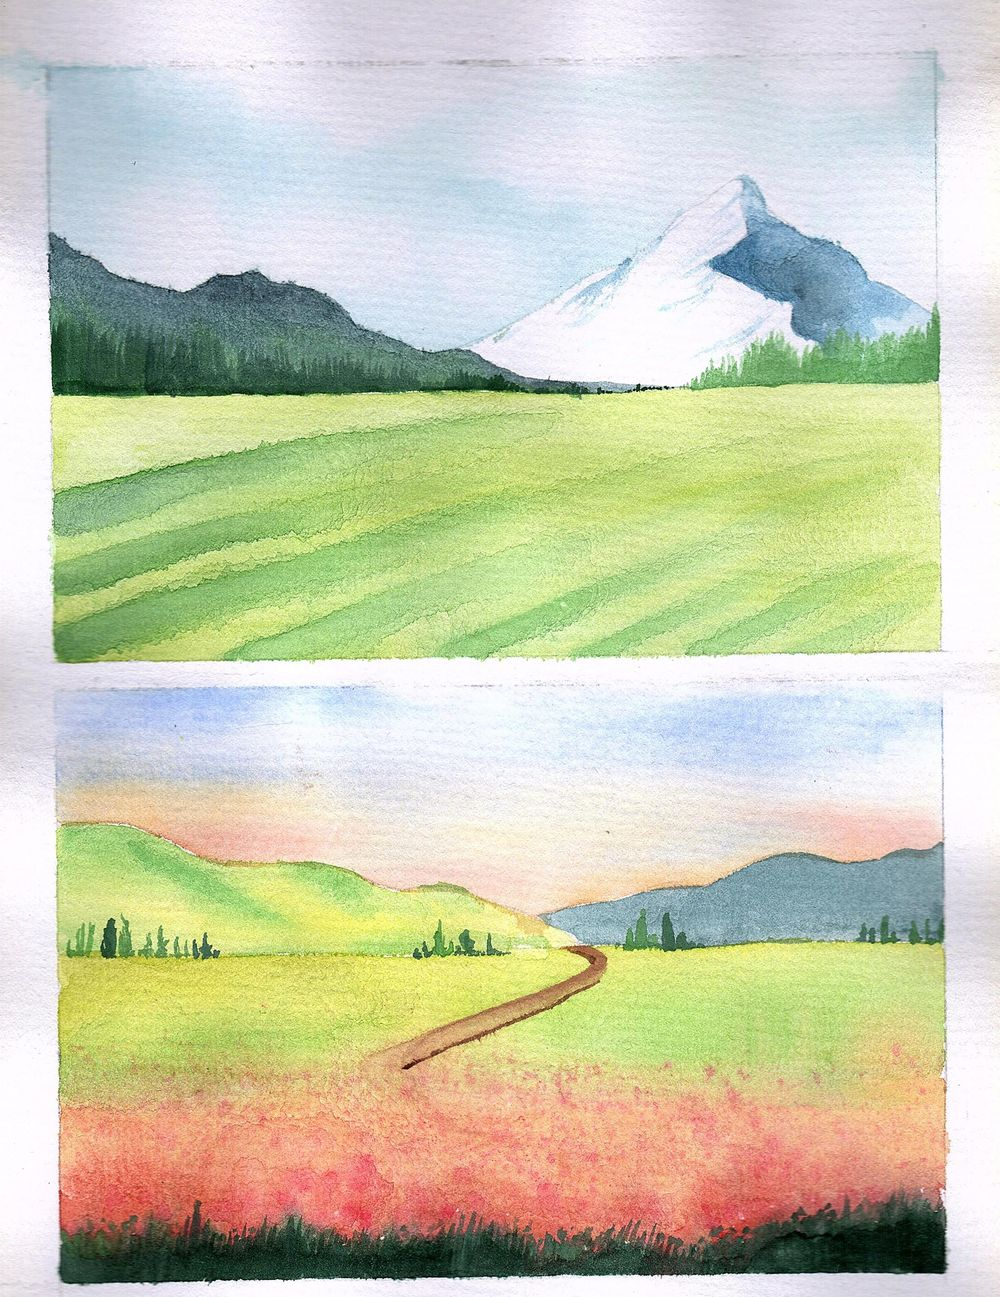 Watercolor Paintings - image 2 - student project